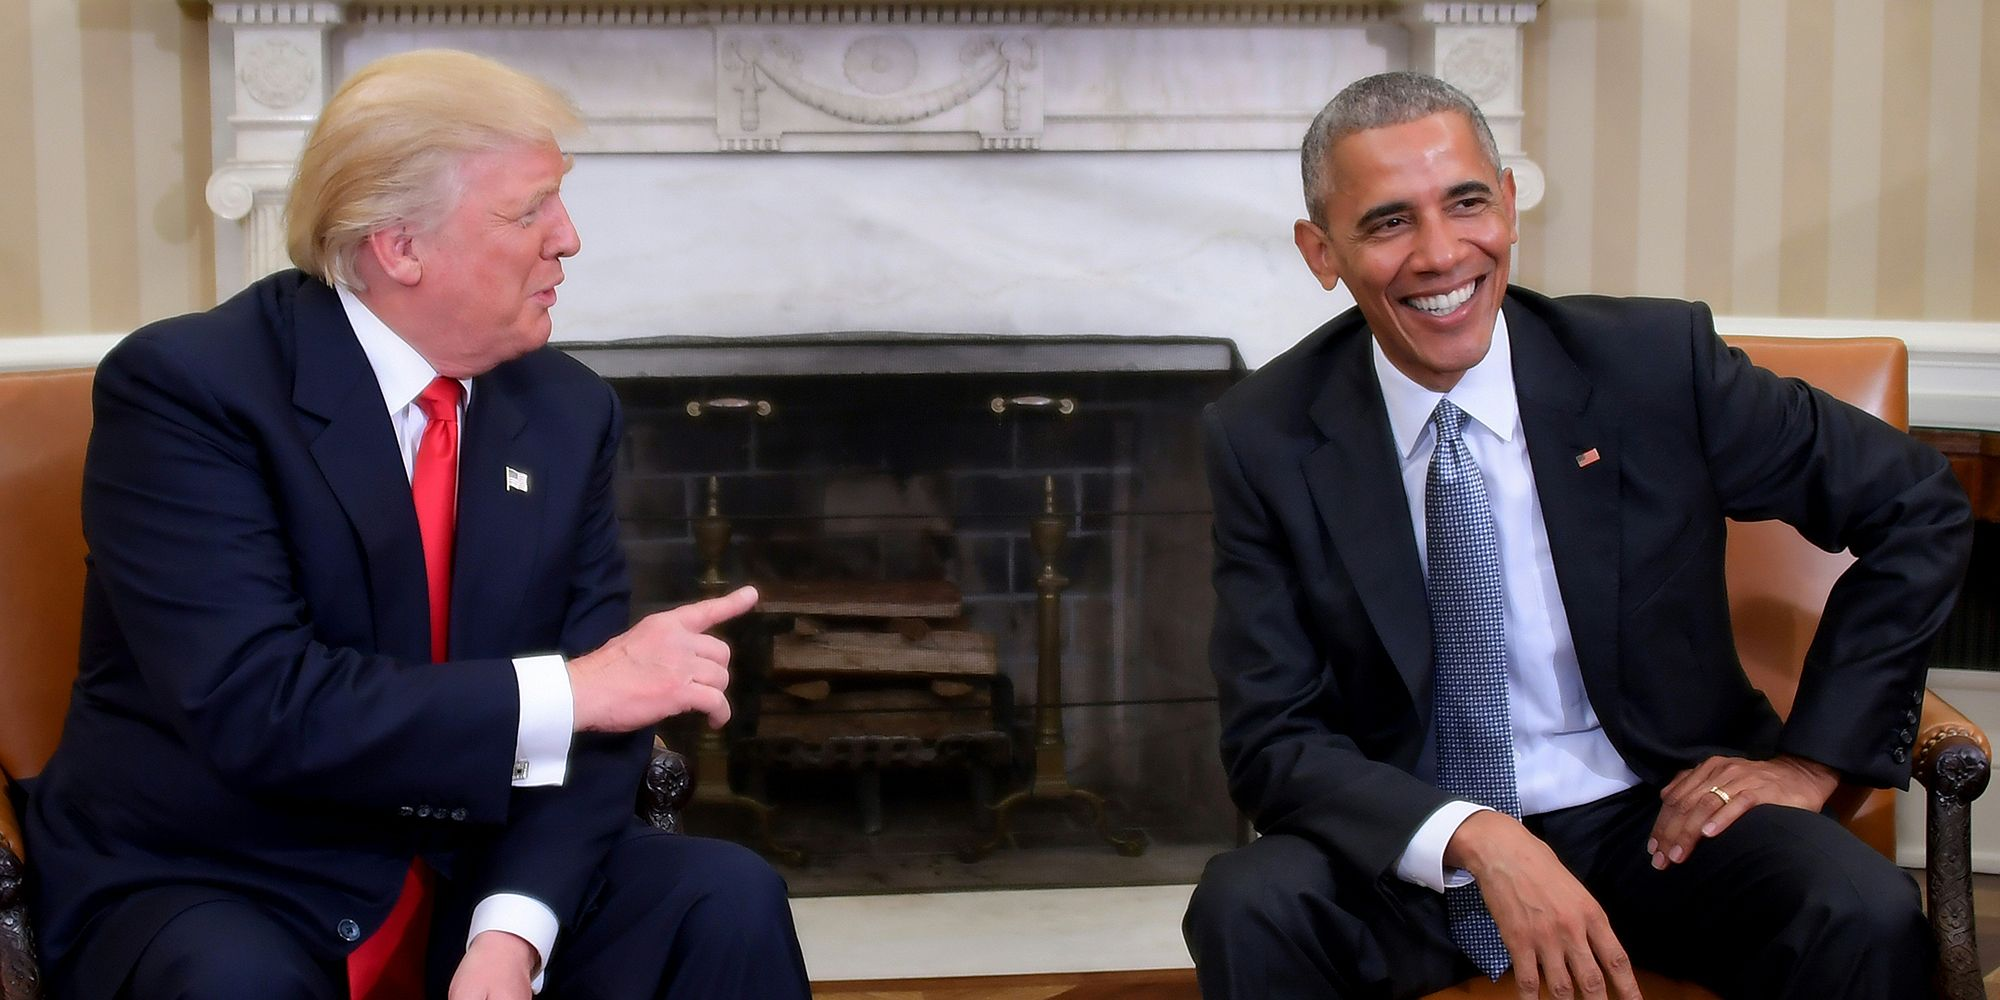 Donald Trump has cancelled his visit to the UK and blamed Obama